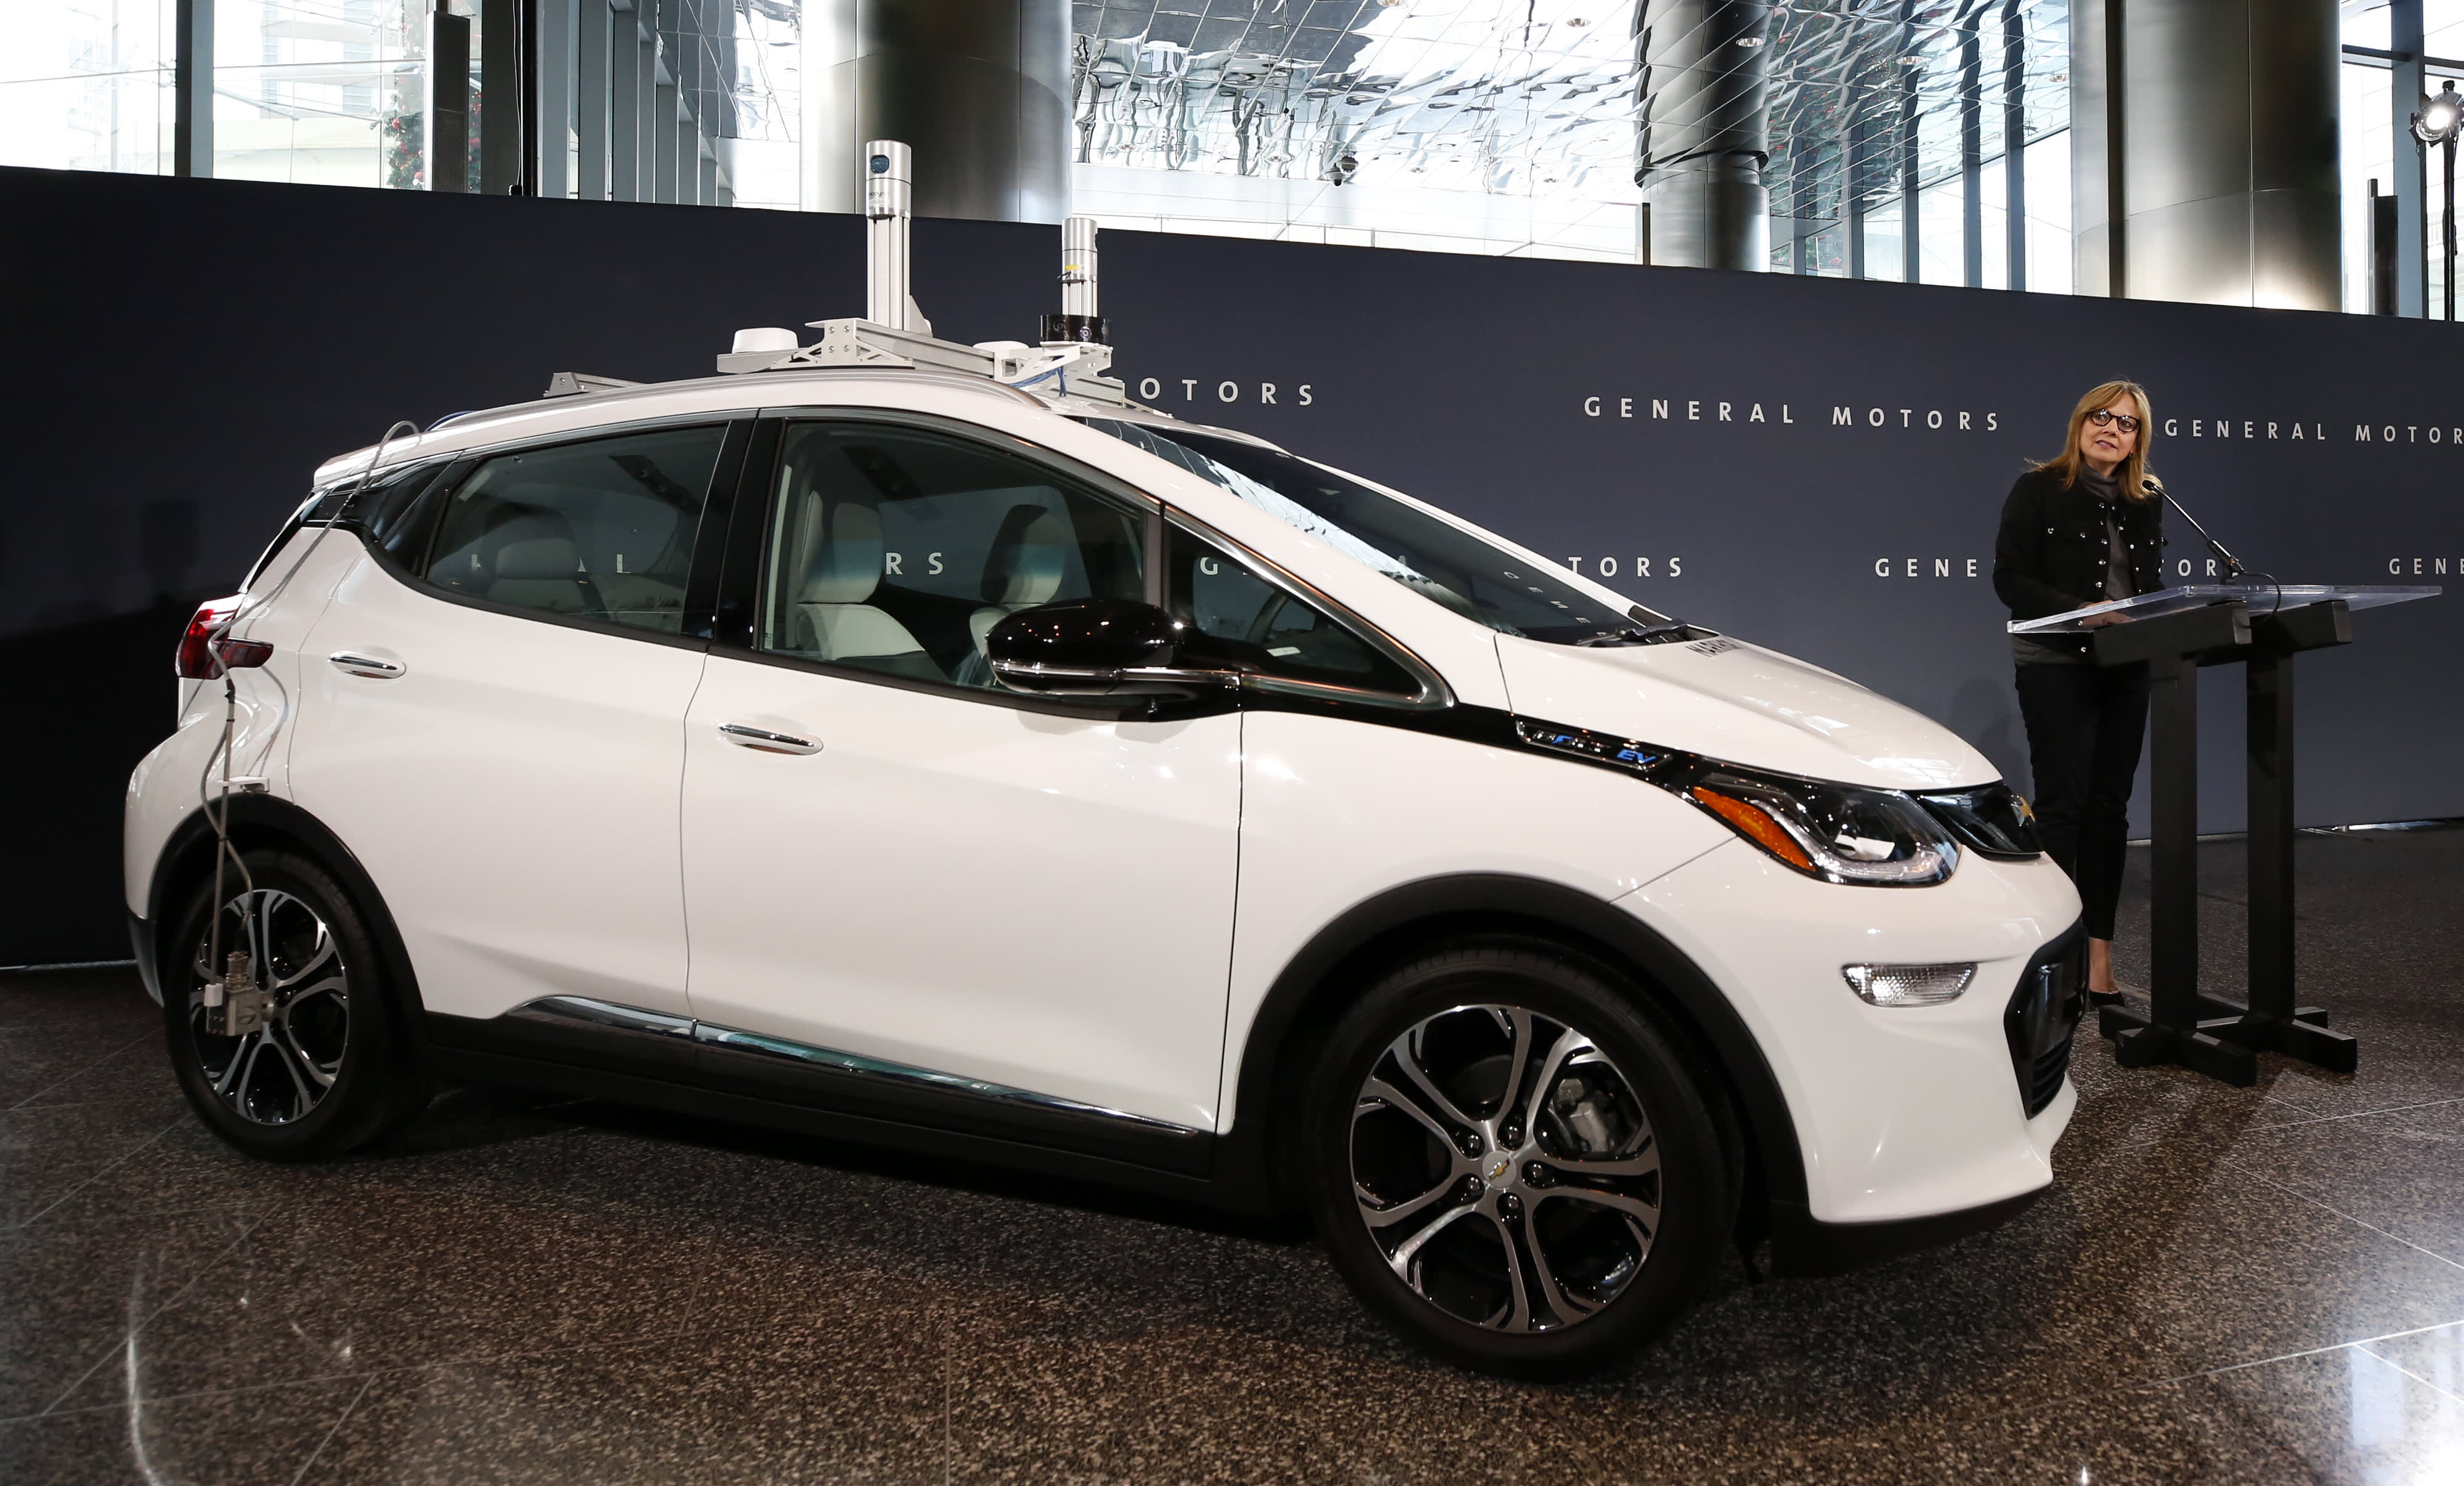 General Motors Cars >> Gm To Launch Autonomous Cars In Big Cities Sometime In 2019